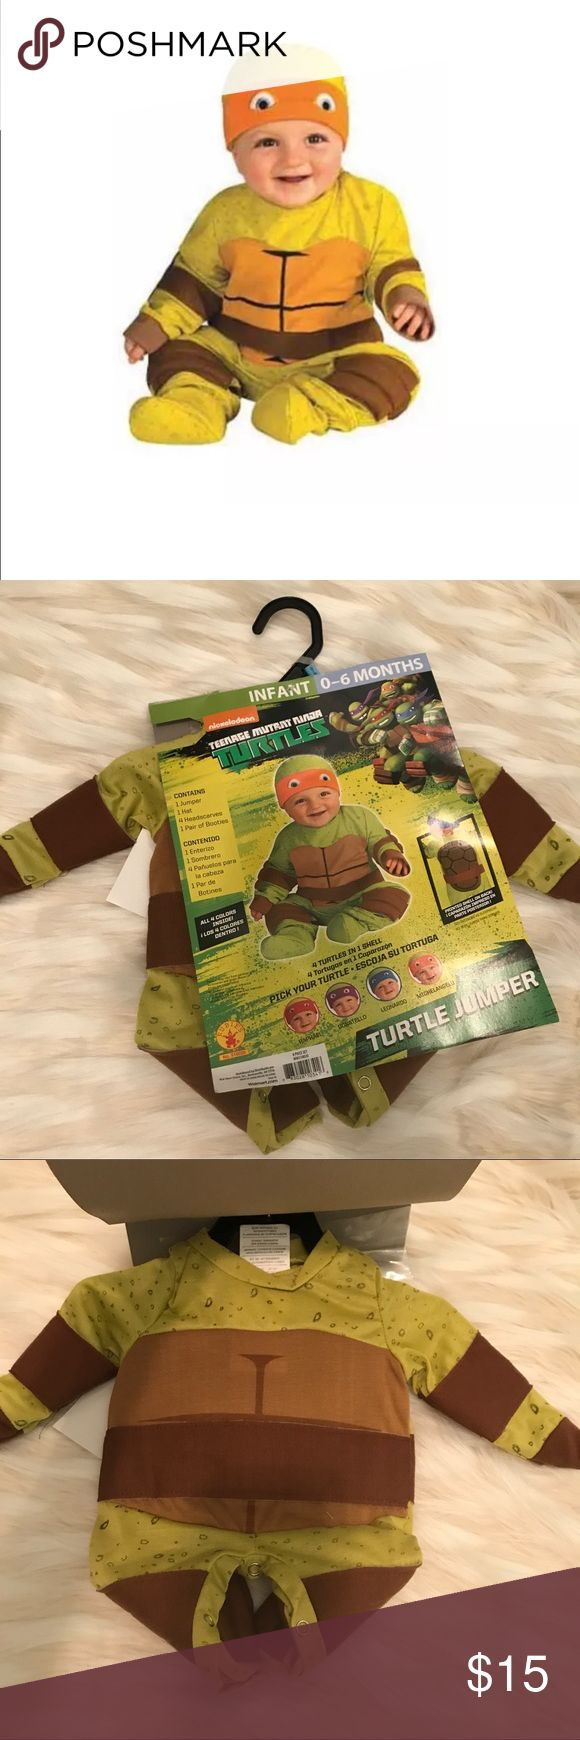 Teenage Mutant Ninja Turtles baby costume Teenage Mutant Ninja Turtle Multi-Pack Infant Boys Halloween Costume, 0-6 Month. Package contains 1 Jumper, 1 Hat, 4 Headscarves (The 4 TMNT) and 1 pair of booties.   Please ask me questions. Costumes Superhero